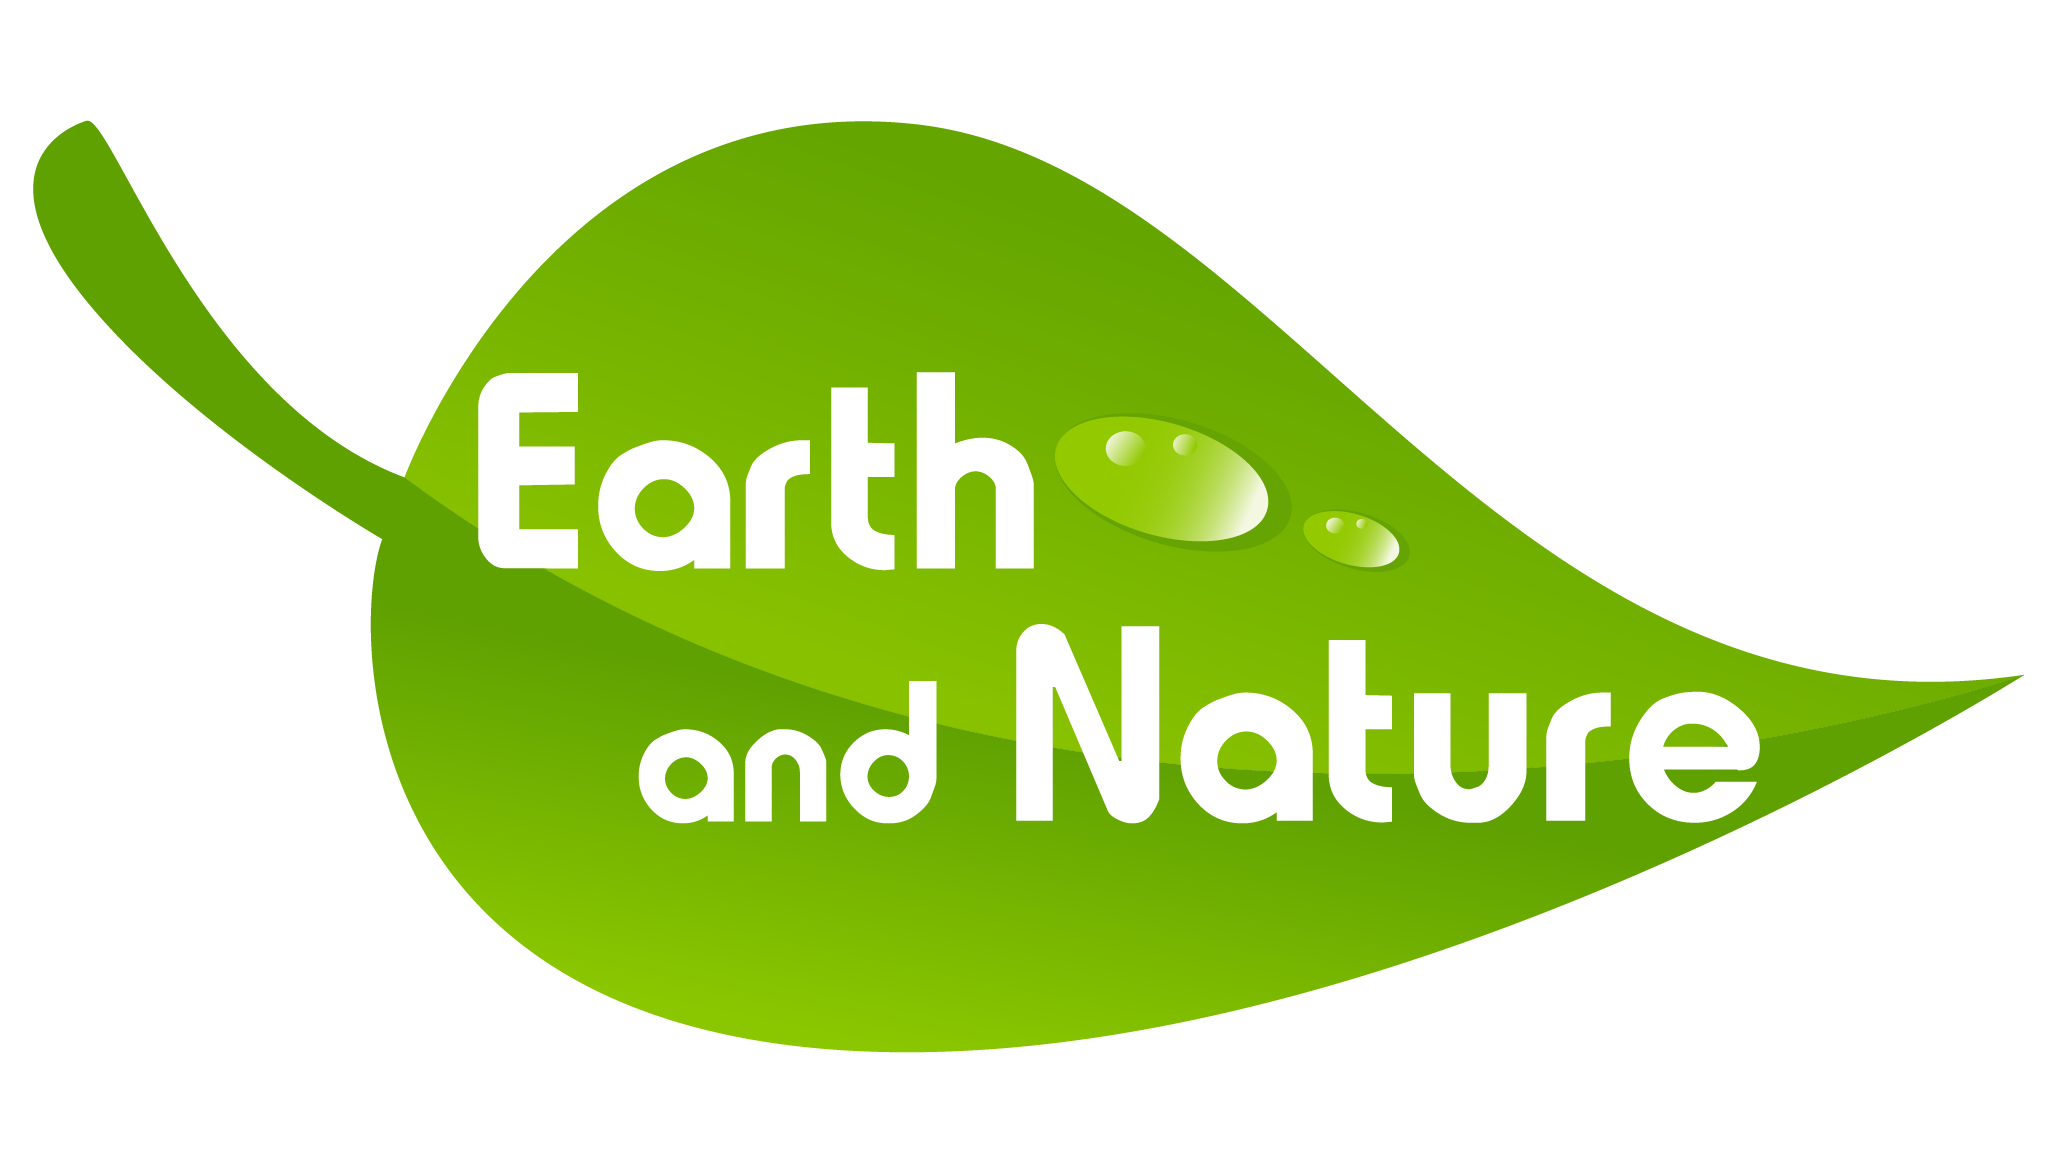 Nature logo png. Earth photos mart